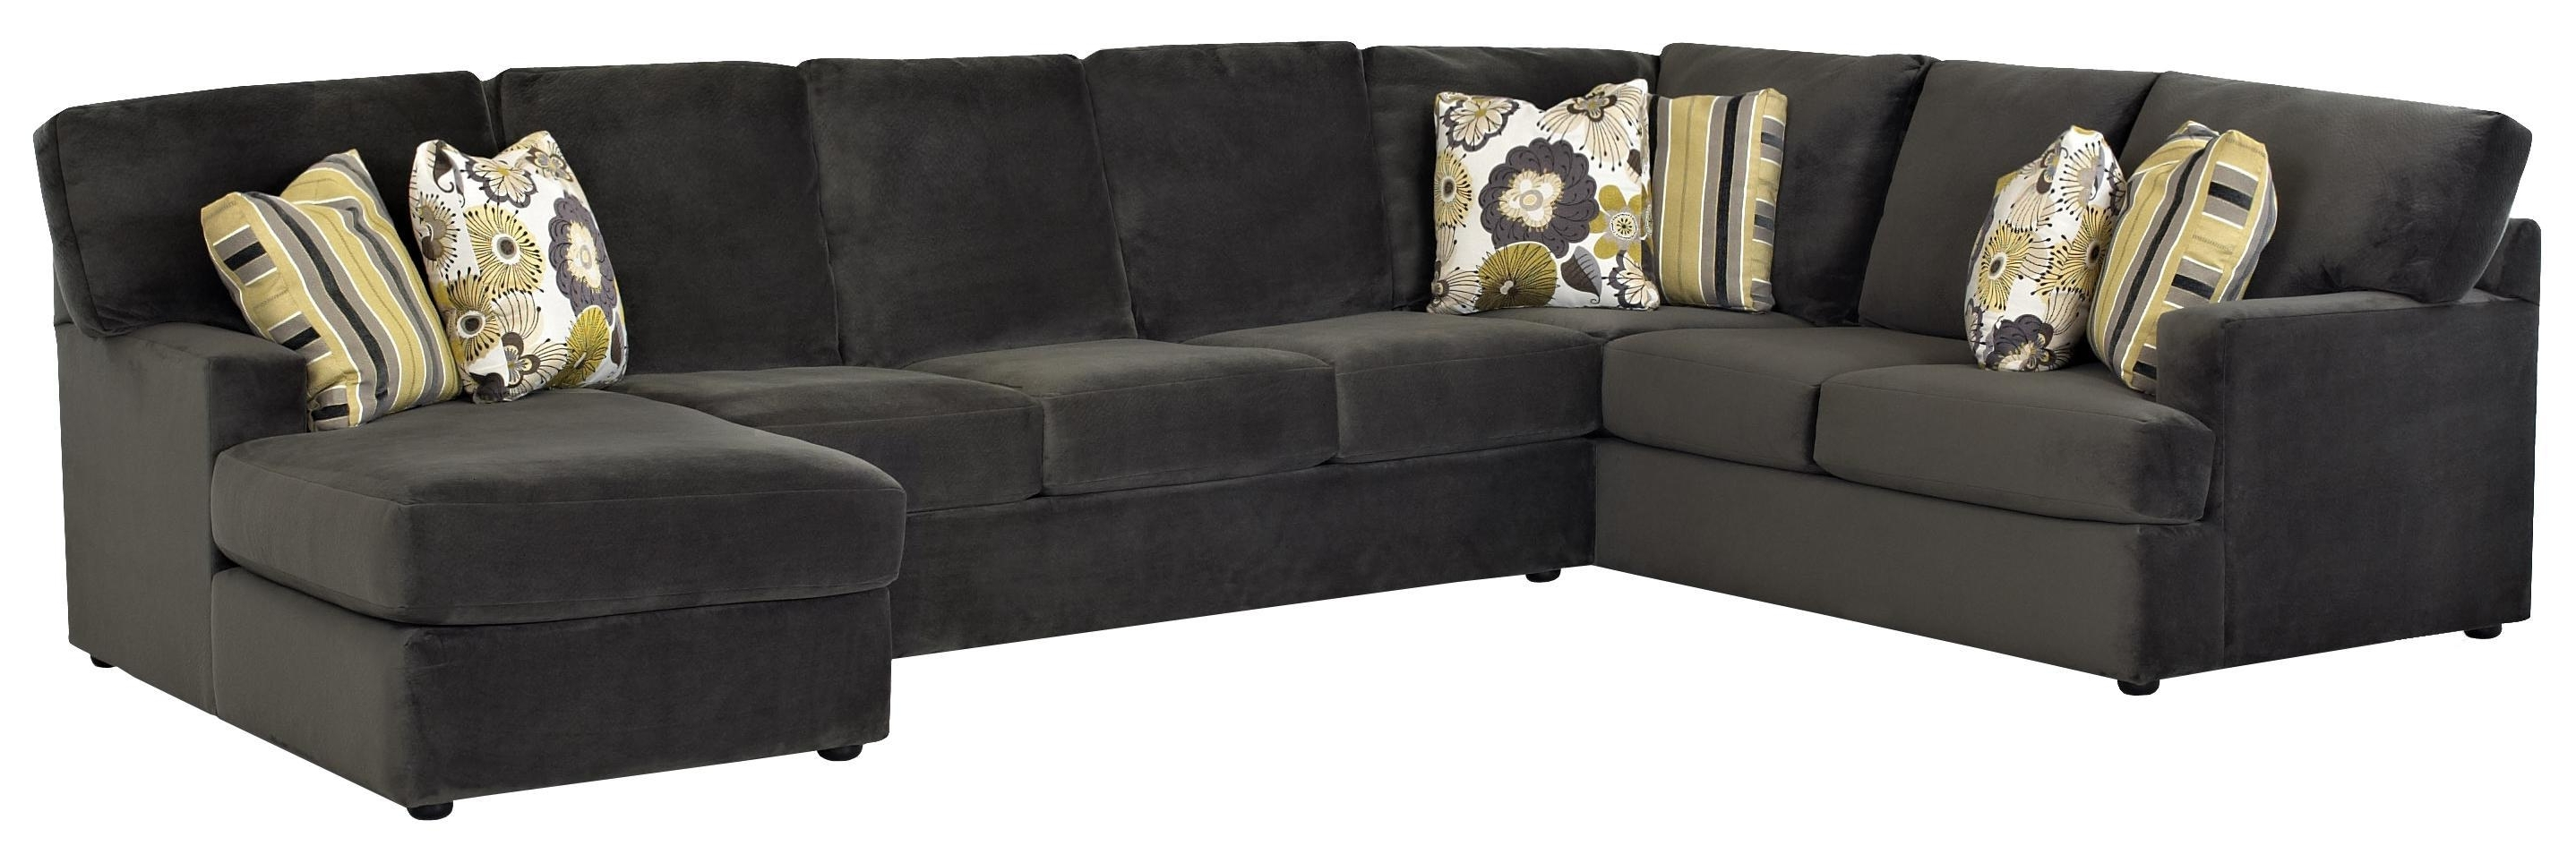 Virginia Beach Sectional Sofas For Best And Newest Stunning The Dump Furniture Sectional Sofa For Home Pic Haynes (View 18 of 20)